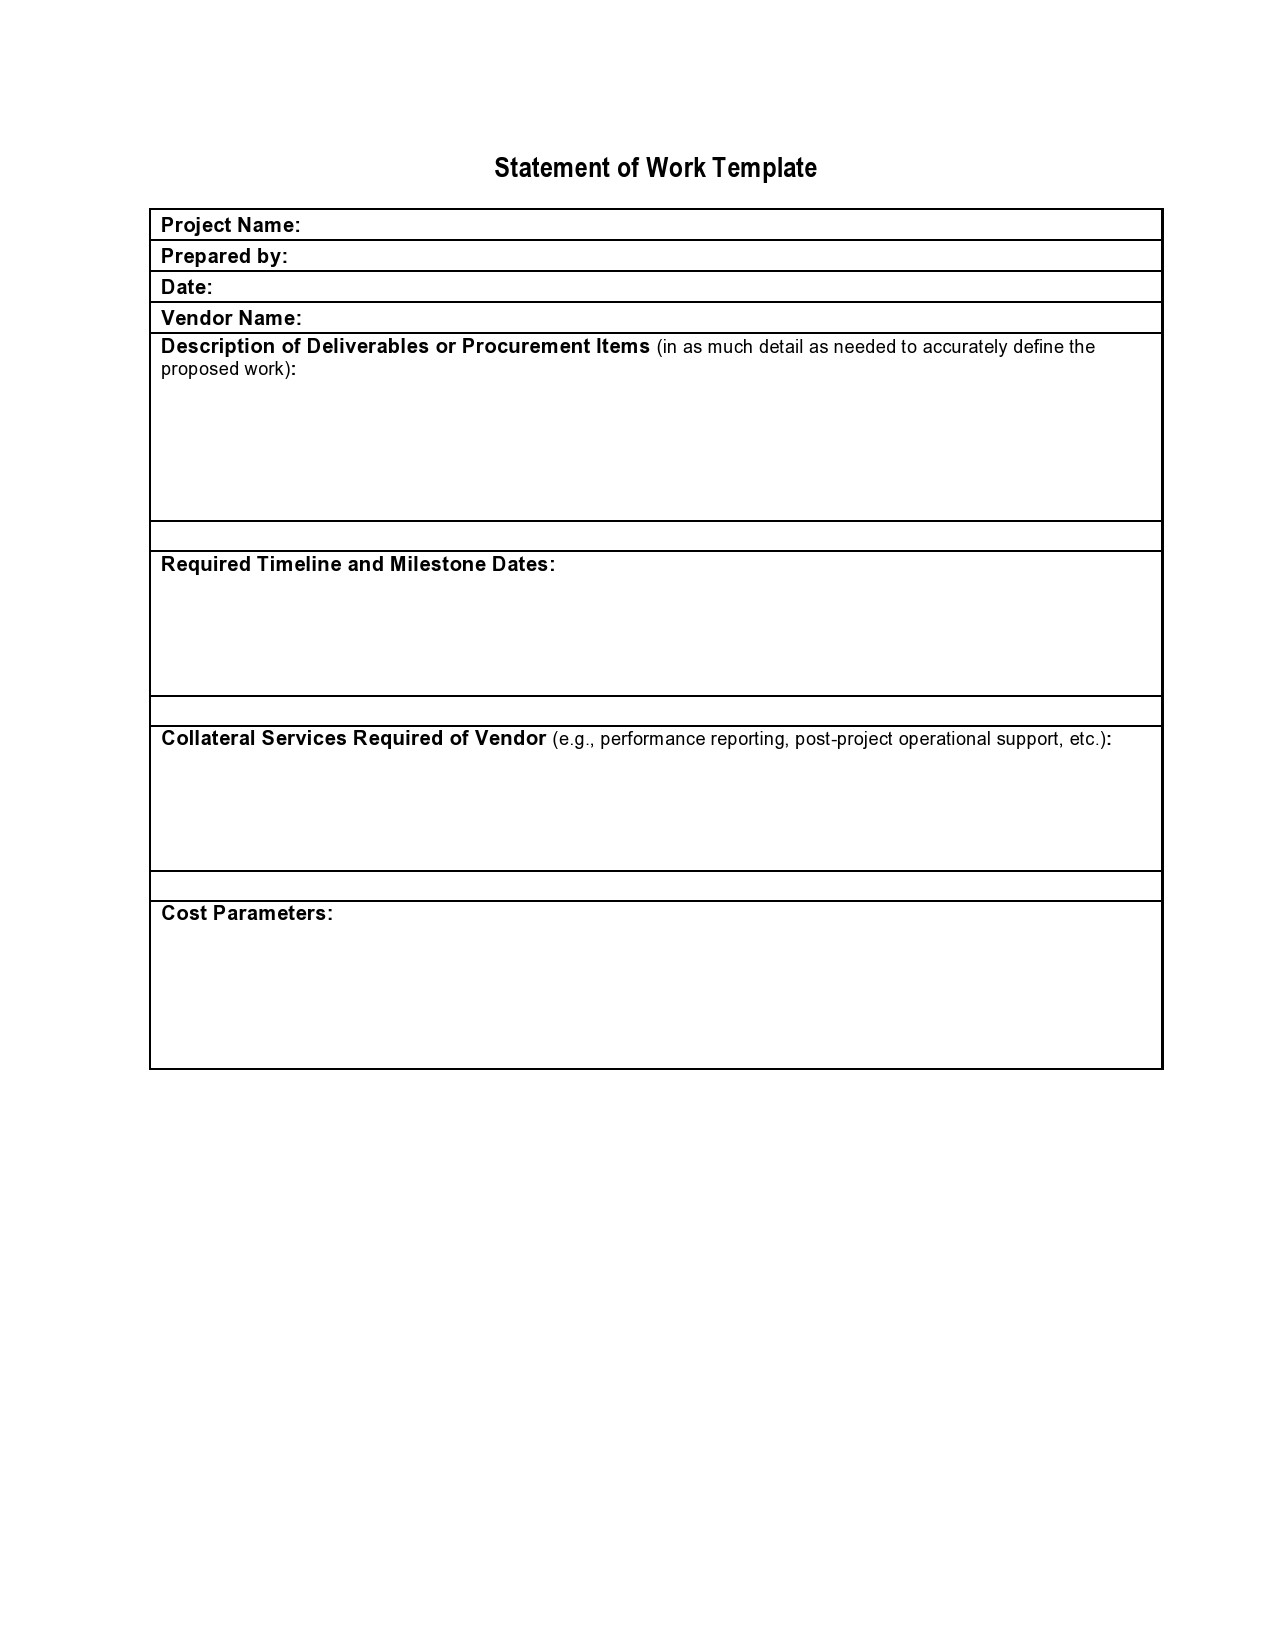 Free statement of work template 13